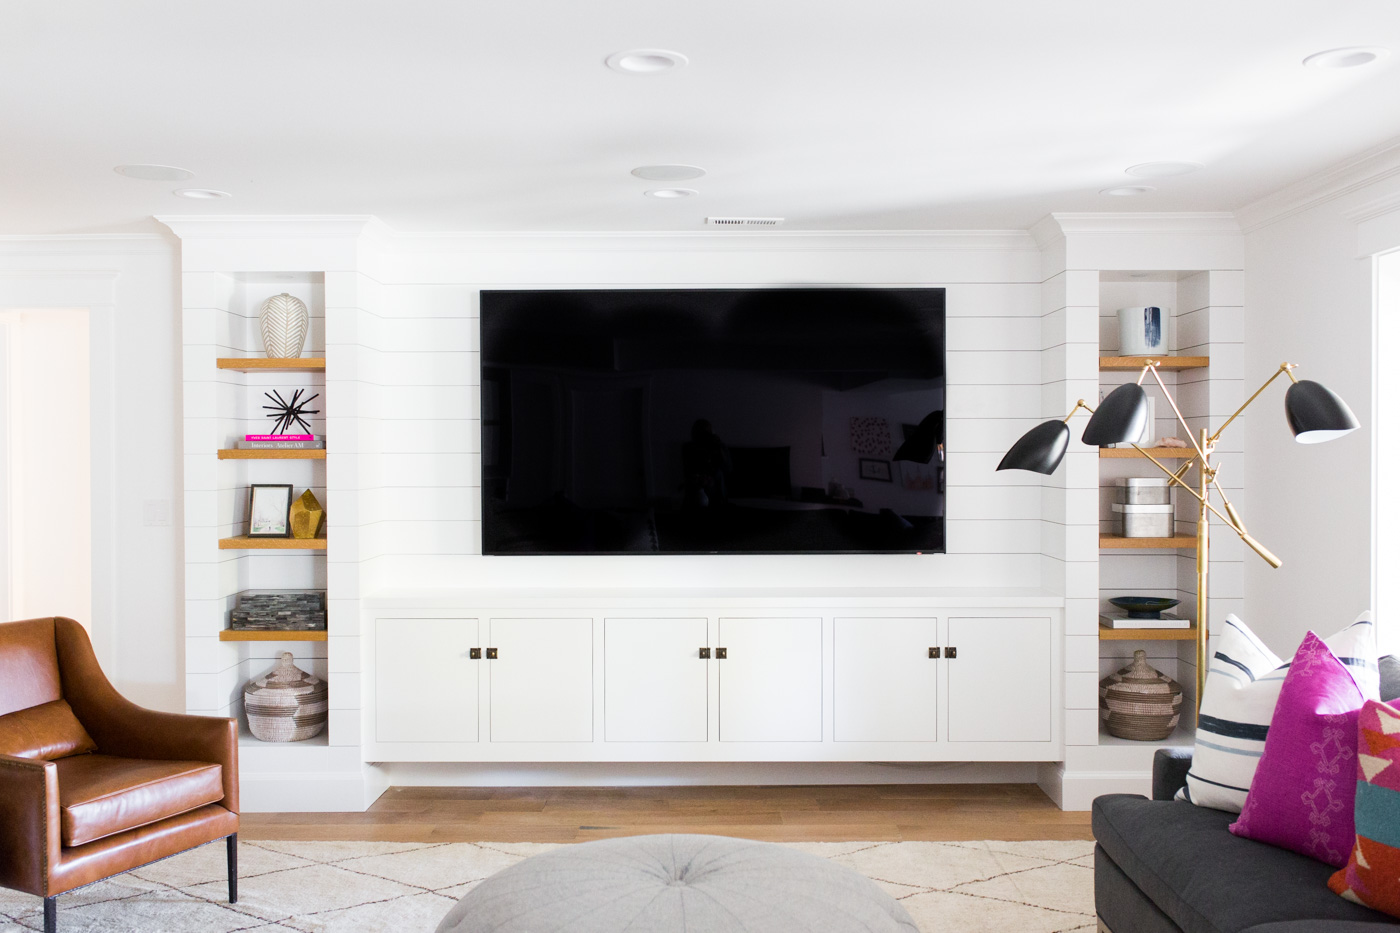 Flat screen TV flanked by built in shelves